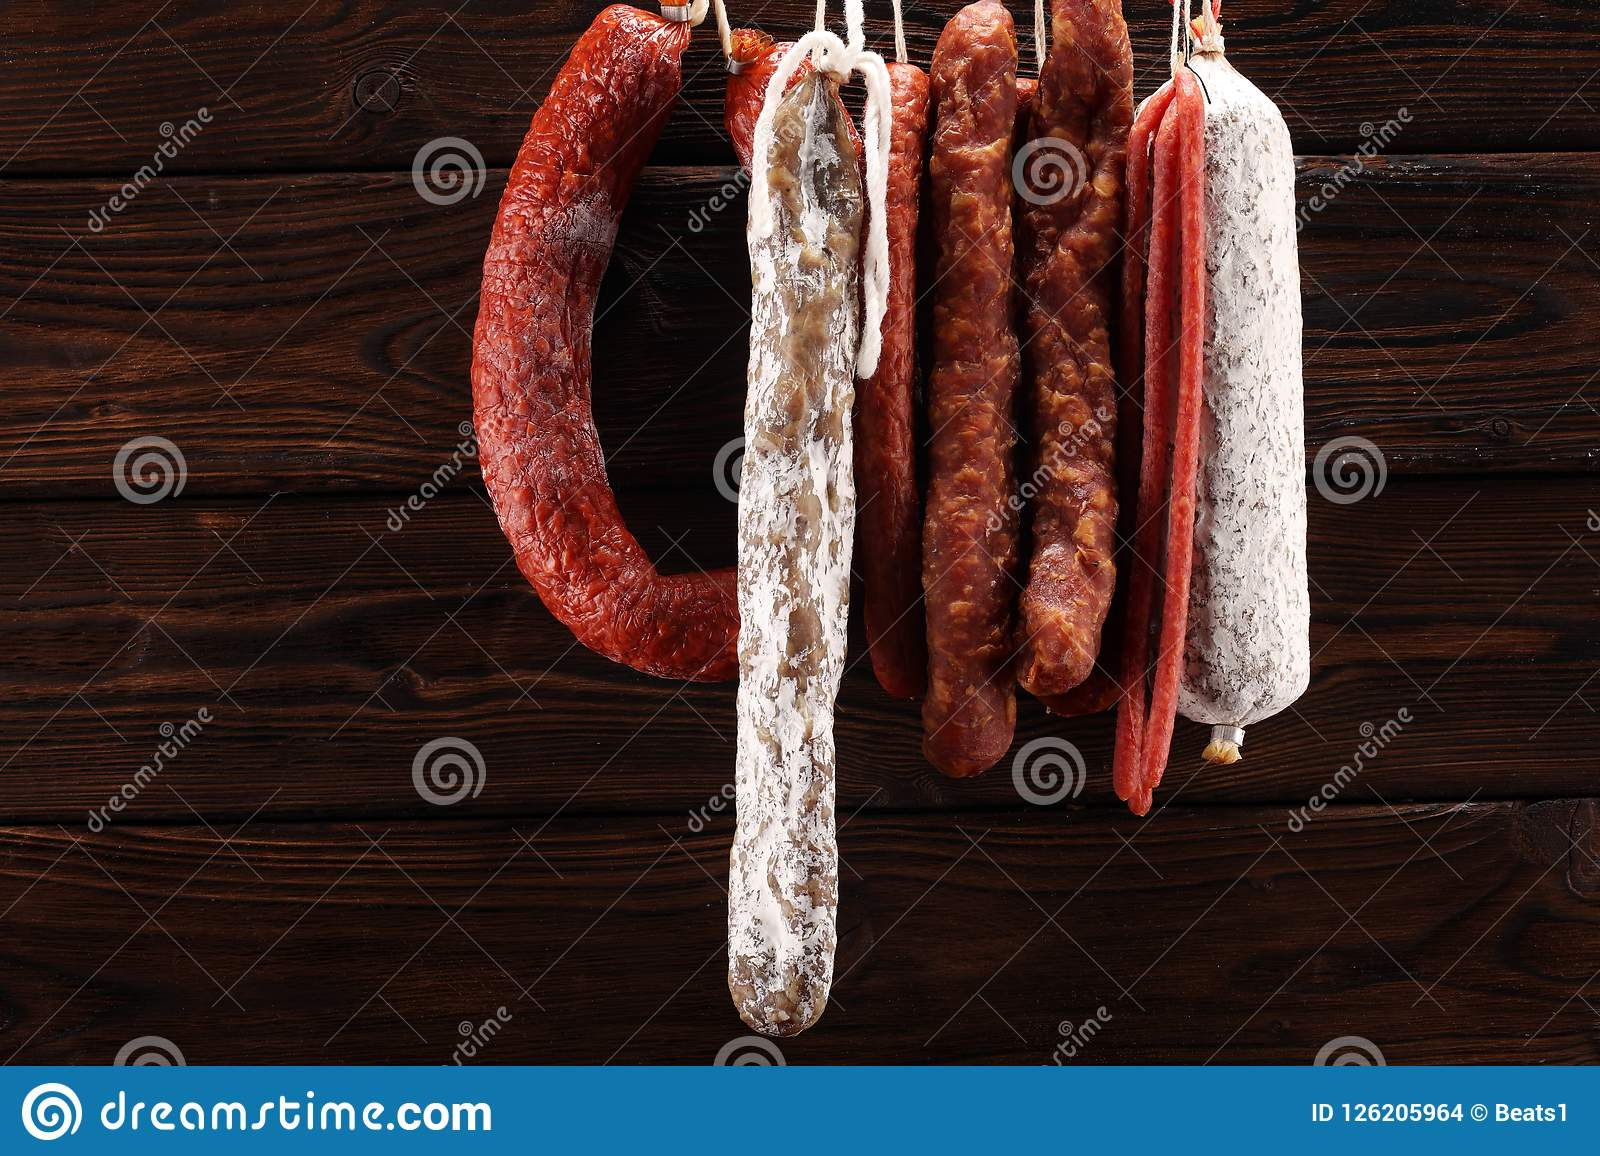 sausages hang from a rack at market. Country dark style. Traditional food. Smoked sausages meat hanging